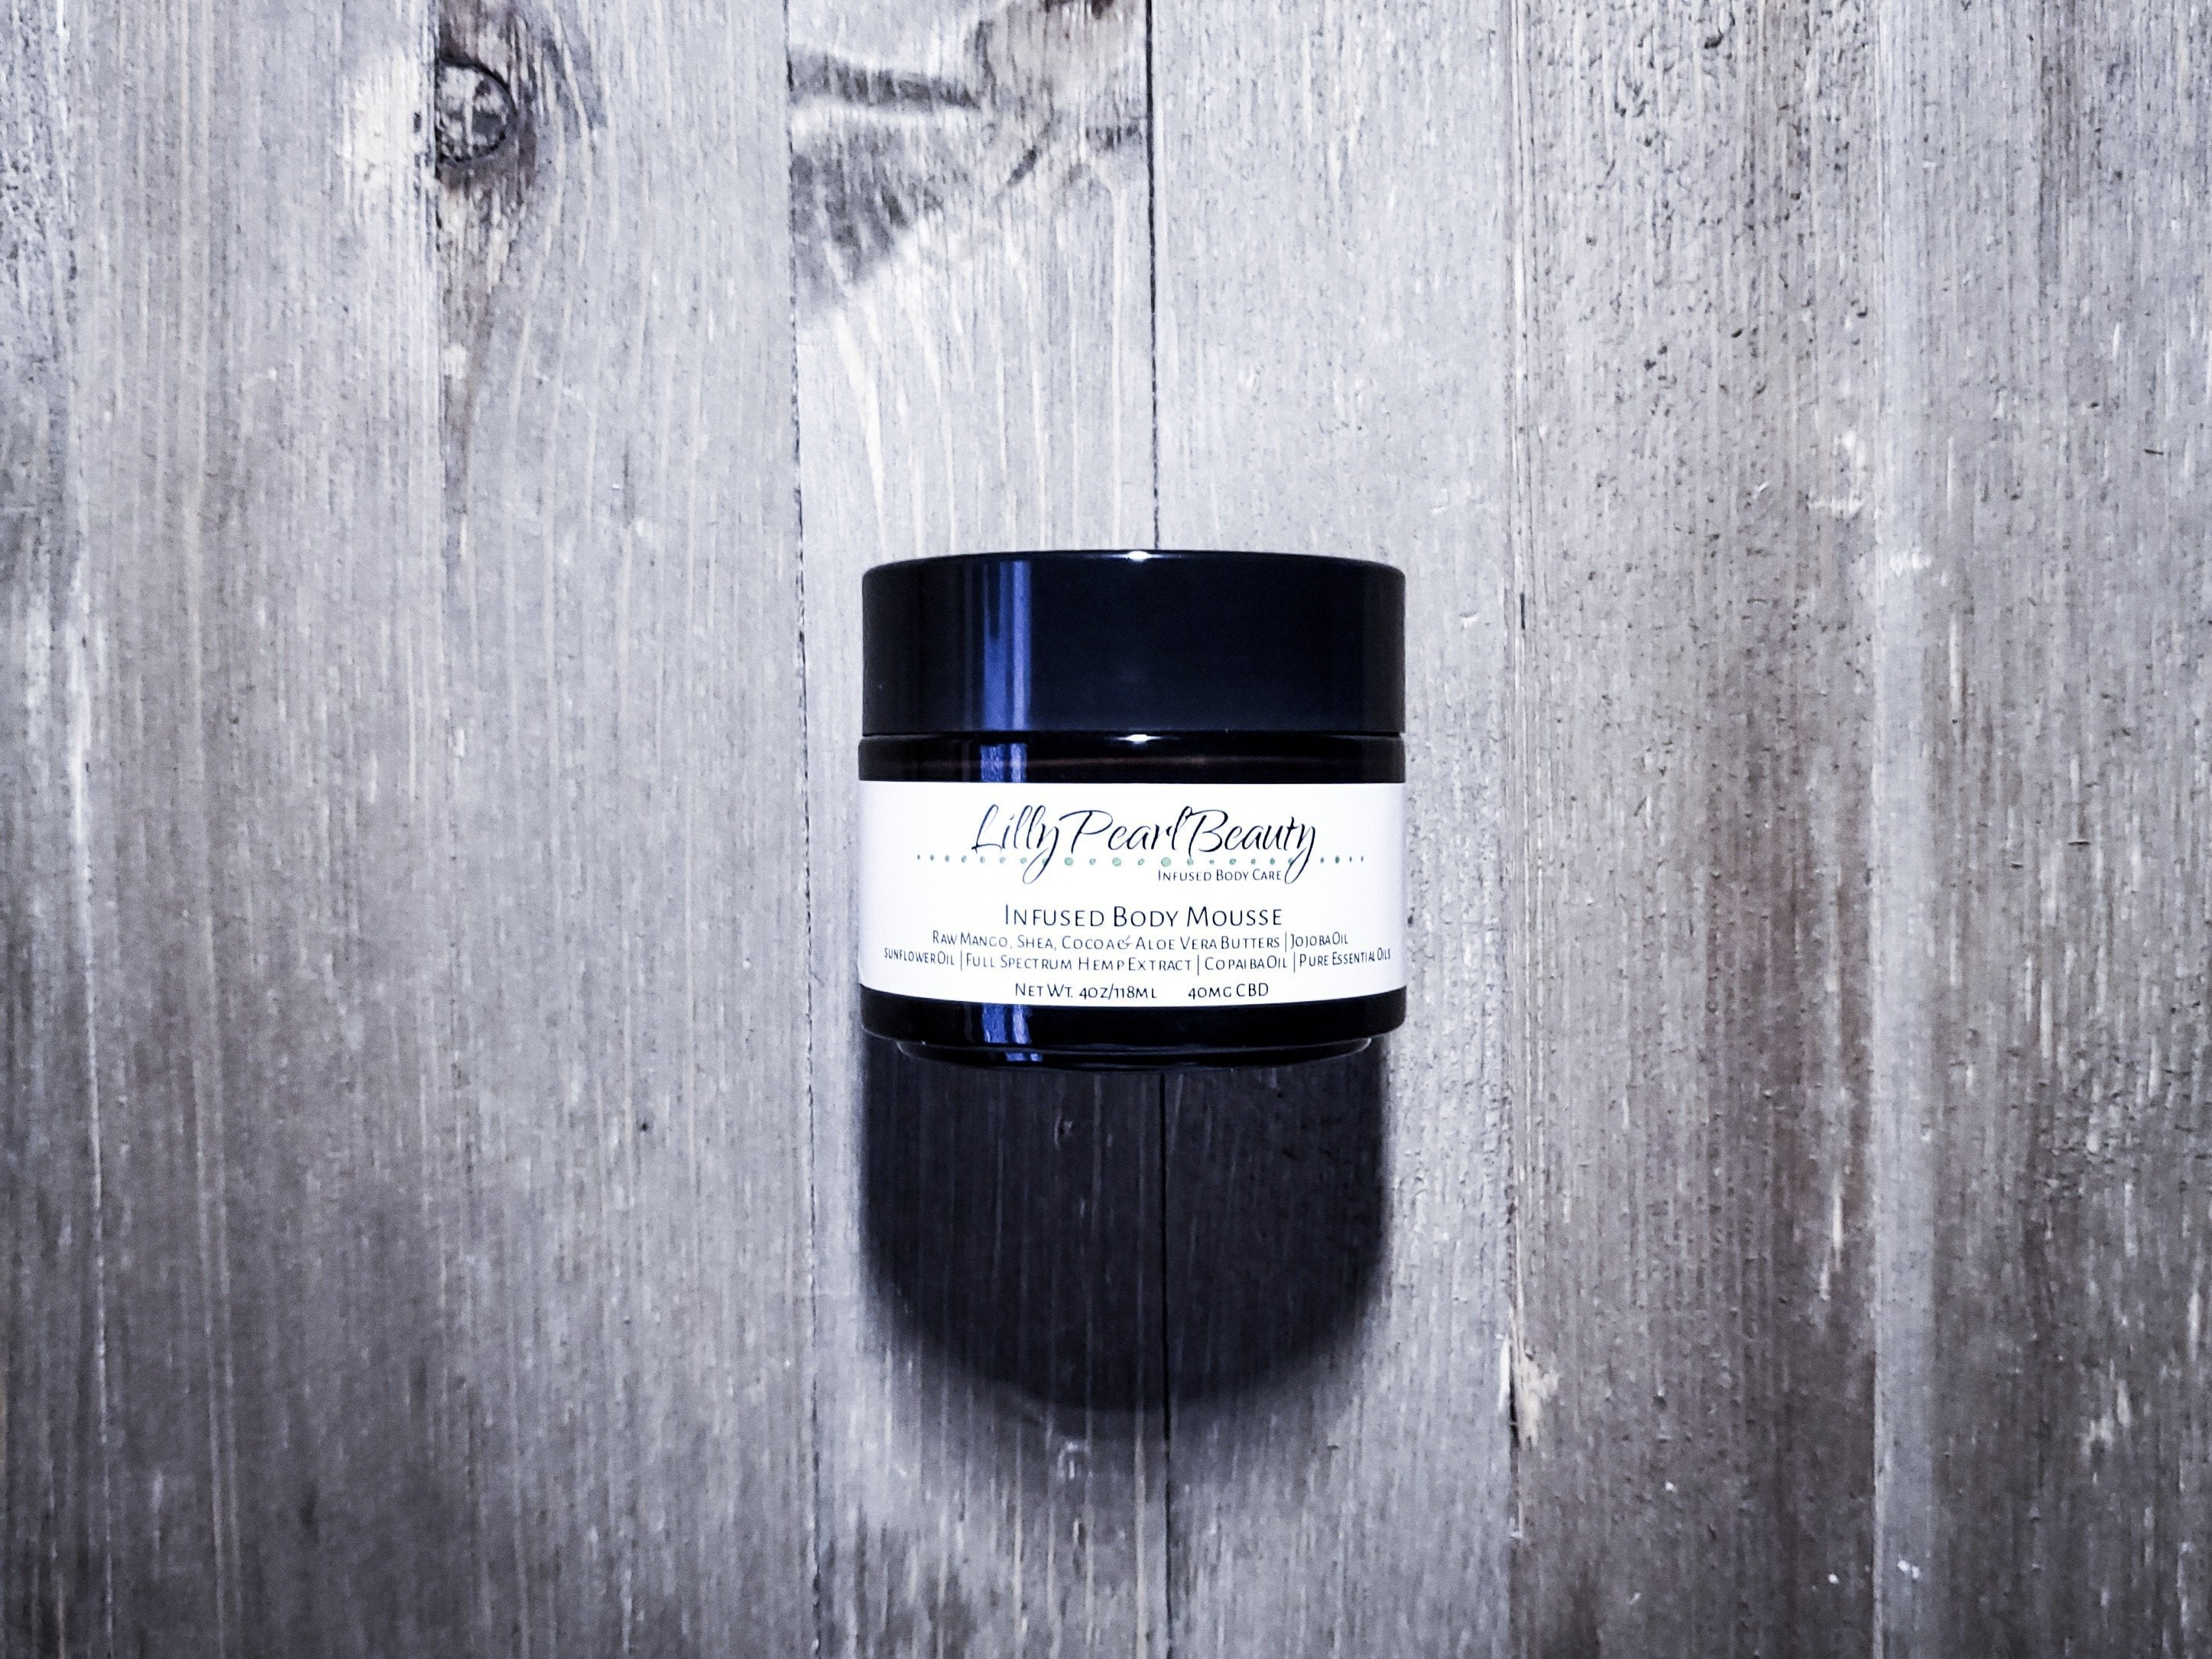 Infused Body Mousse - LillyPearlBeautyco.